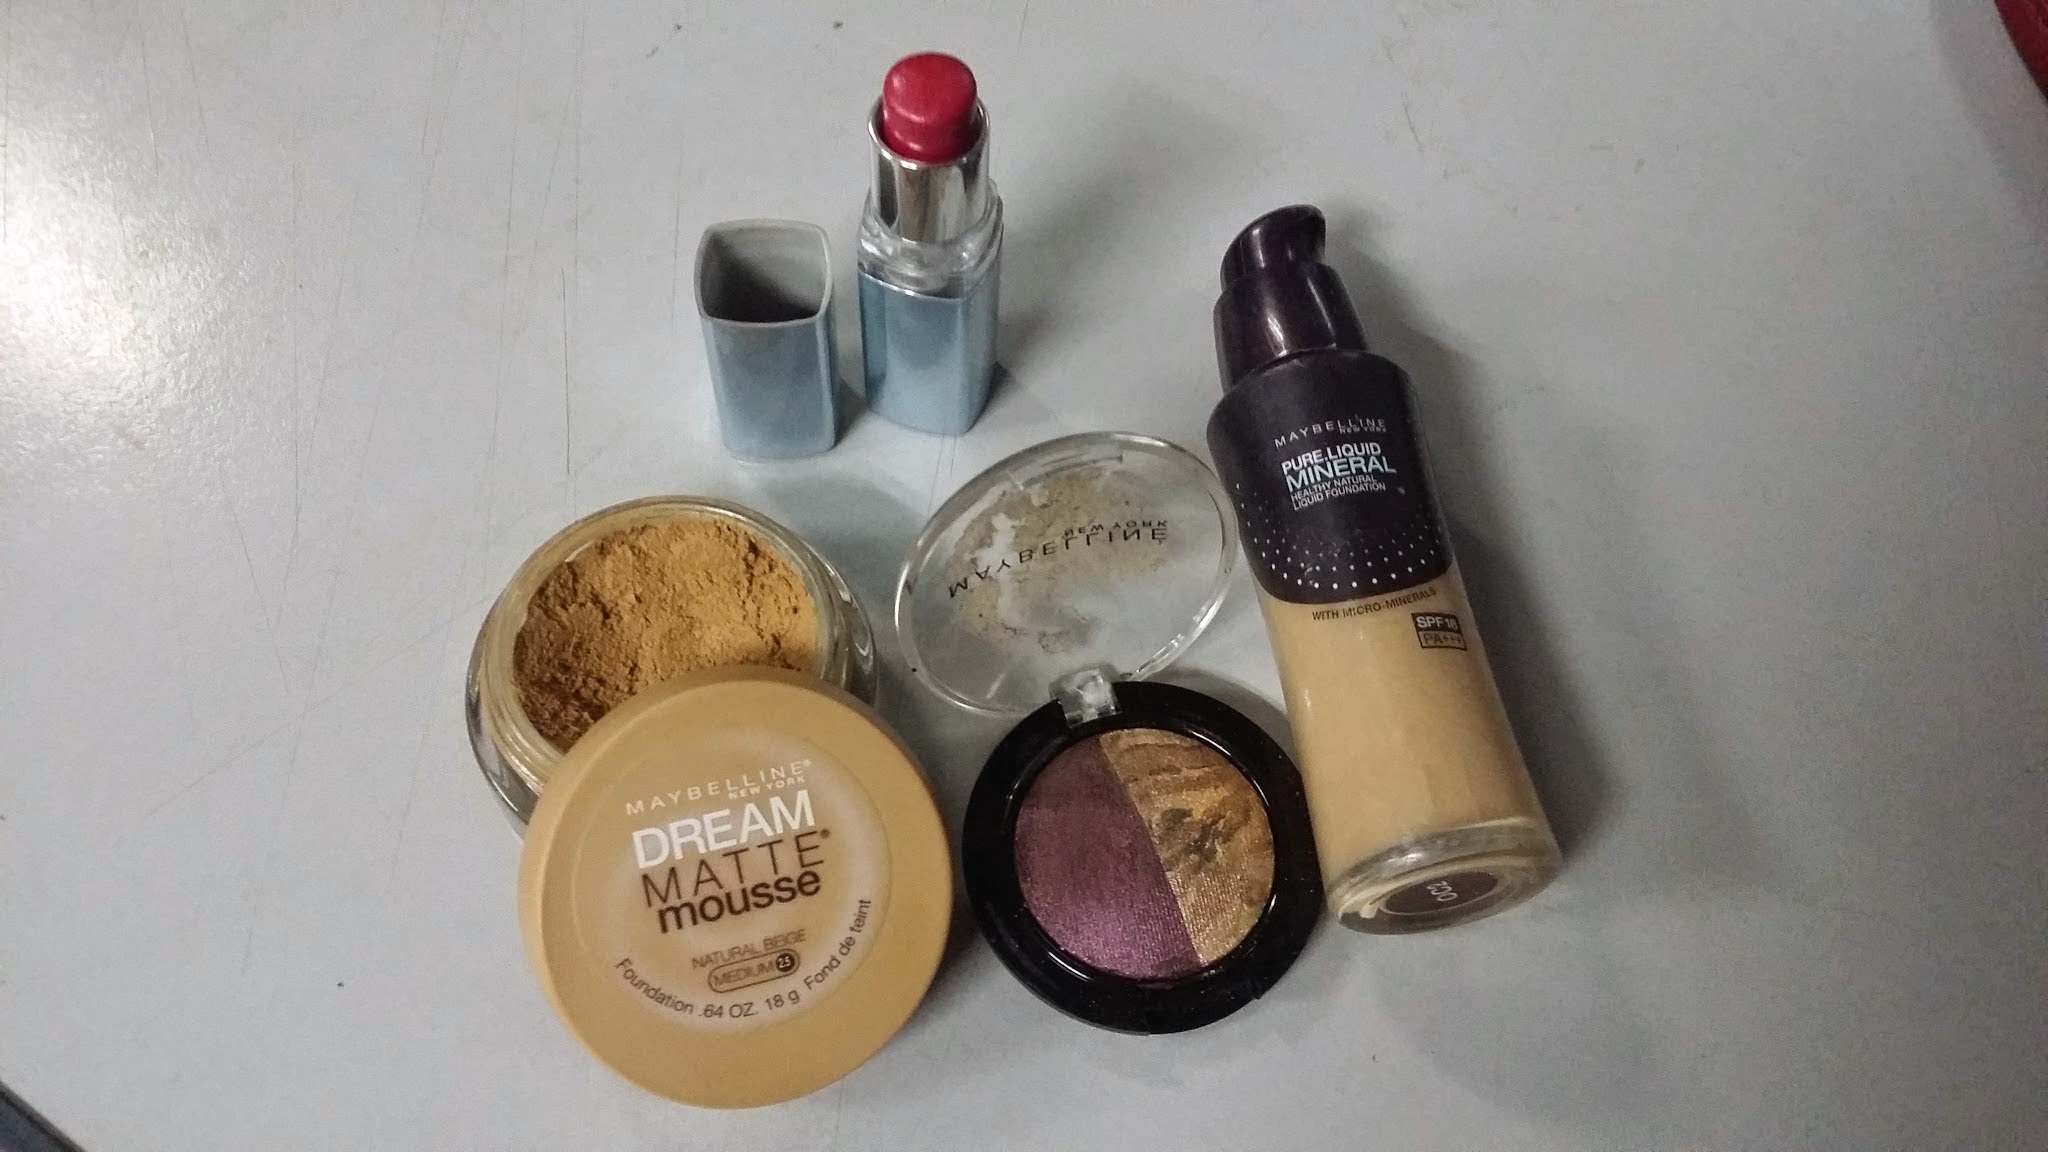 alas make-up, beauty blogger, cara make up yang mudah, cara nak make up, foundation maybelline, lipstik watershine maybelline, tips cantik, tips make up, tutorial make up,